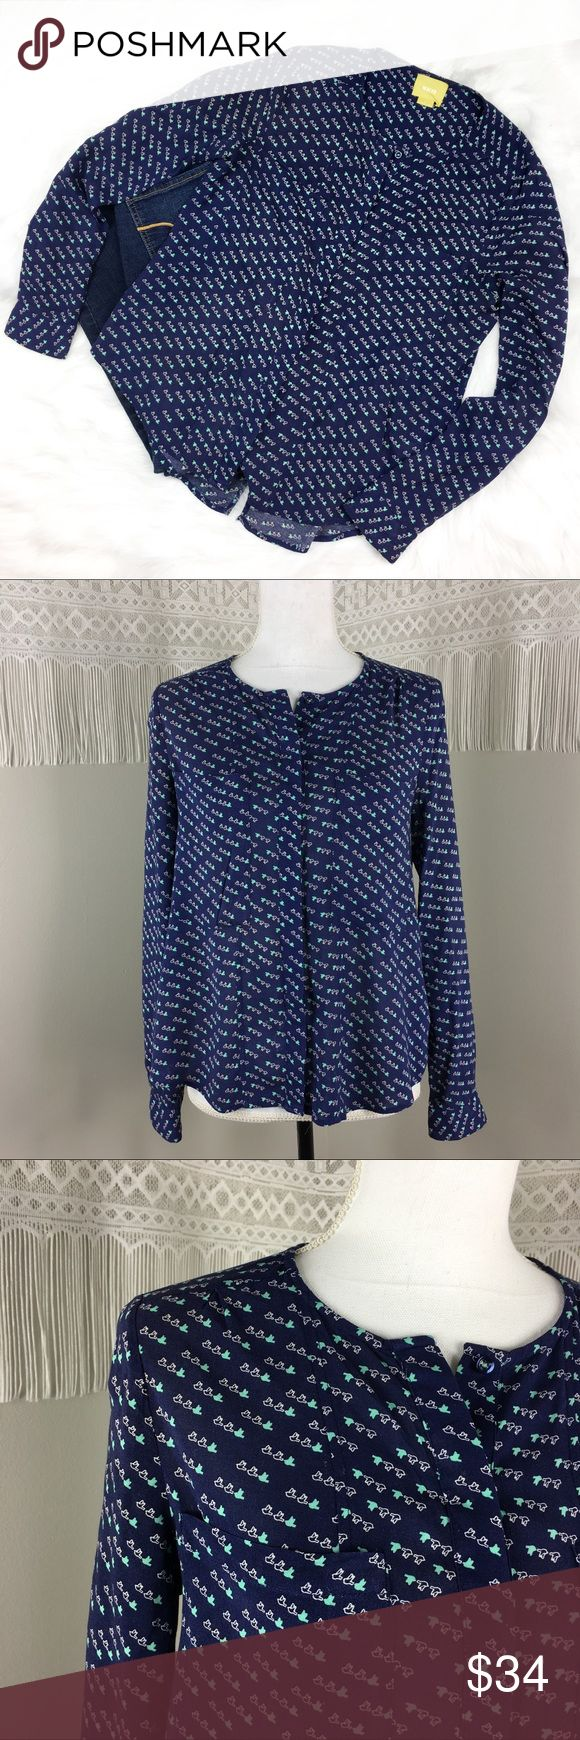 Anthropologie Maeve Clara Tony Bird Blouse Anthropologie's brand Maeve Clara tiny bird blouse. Size 2. Approximate measurements are 24' front length, 23' sleeve, and 18' bust. GUC with no major flaws. ❌No trades ❌ Modeling ❌No PayPal or off Posh transactions ❤️ I 💕Bundles ❤️Reasonable Offers PLEASE ❤️ Anthropologie Tops Blouses